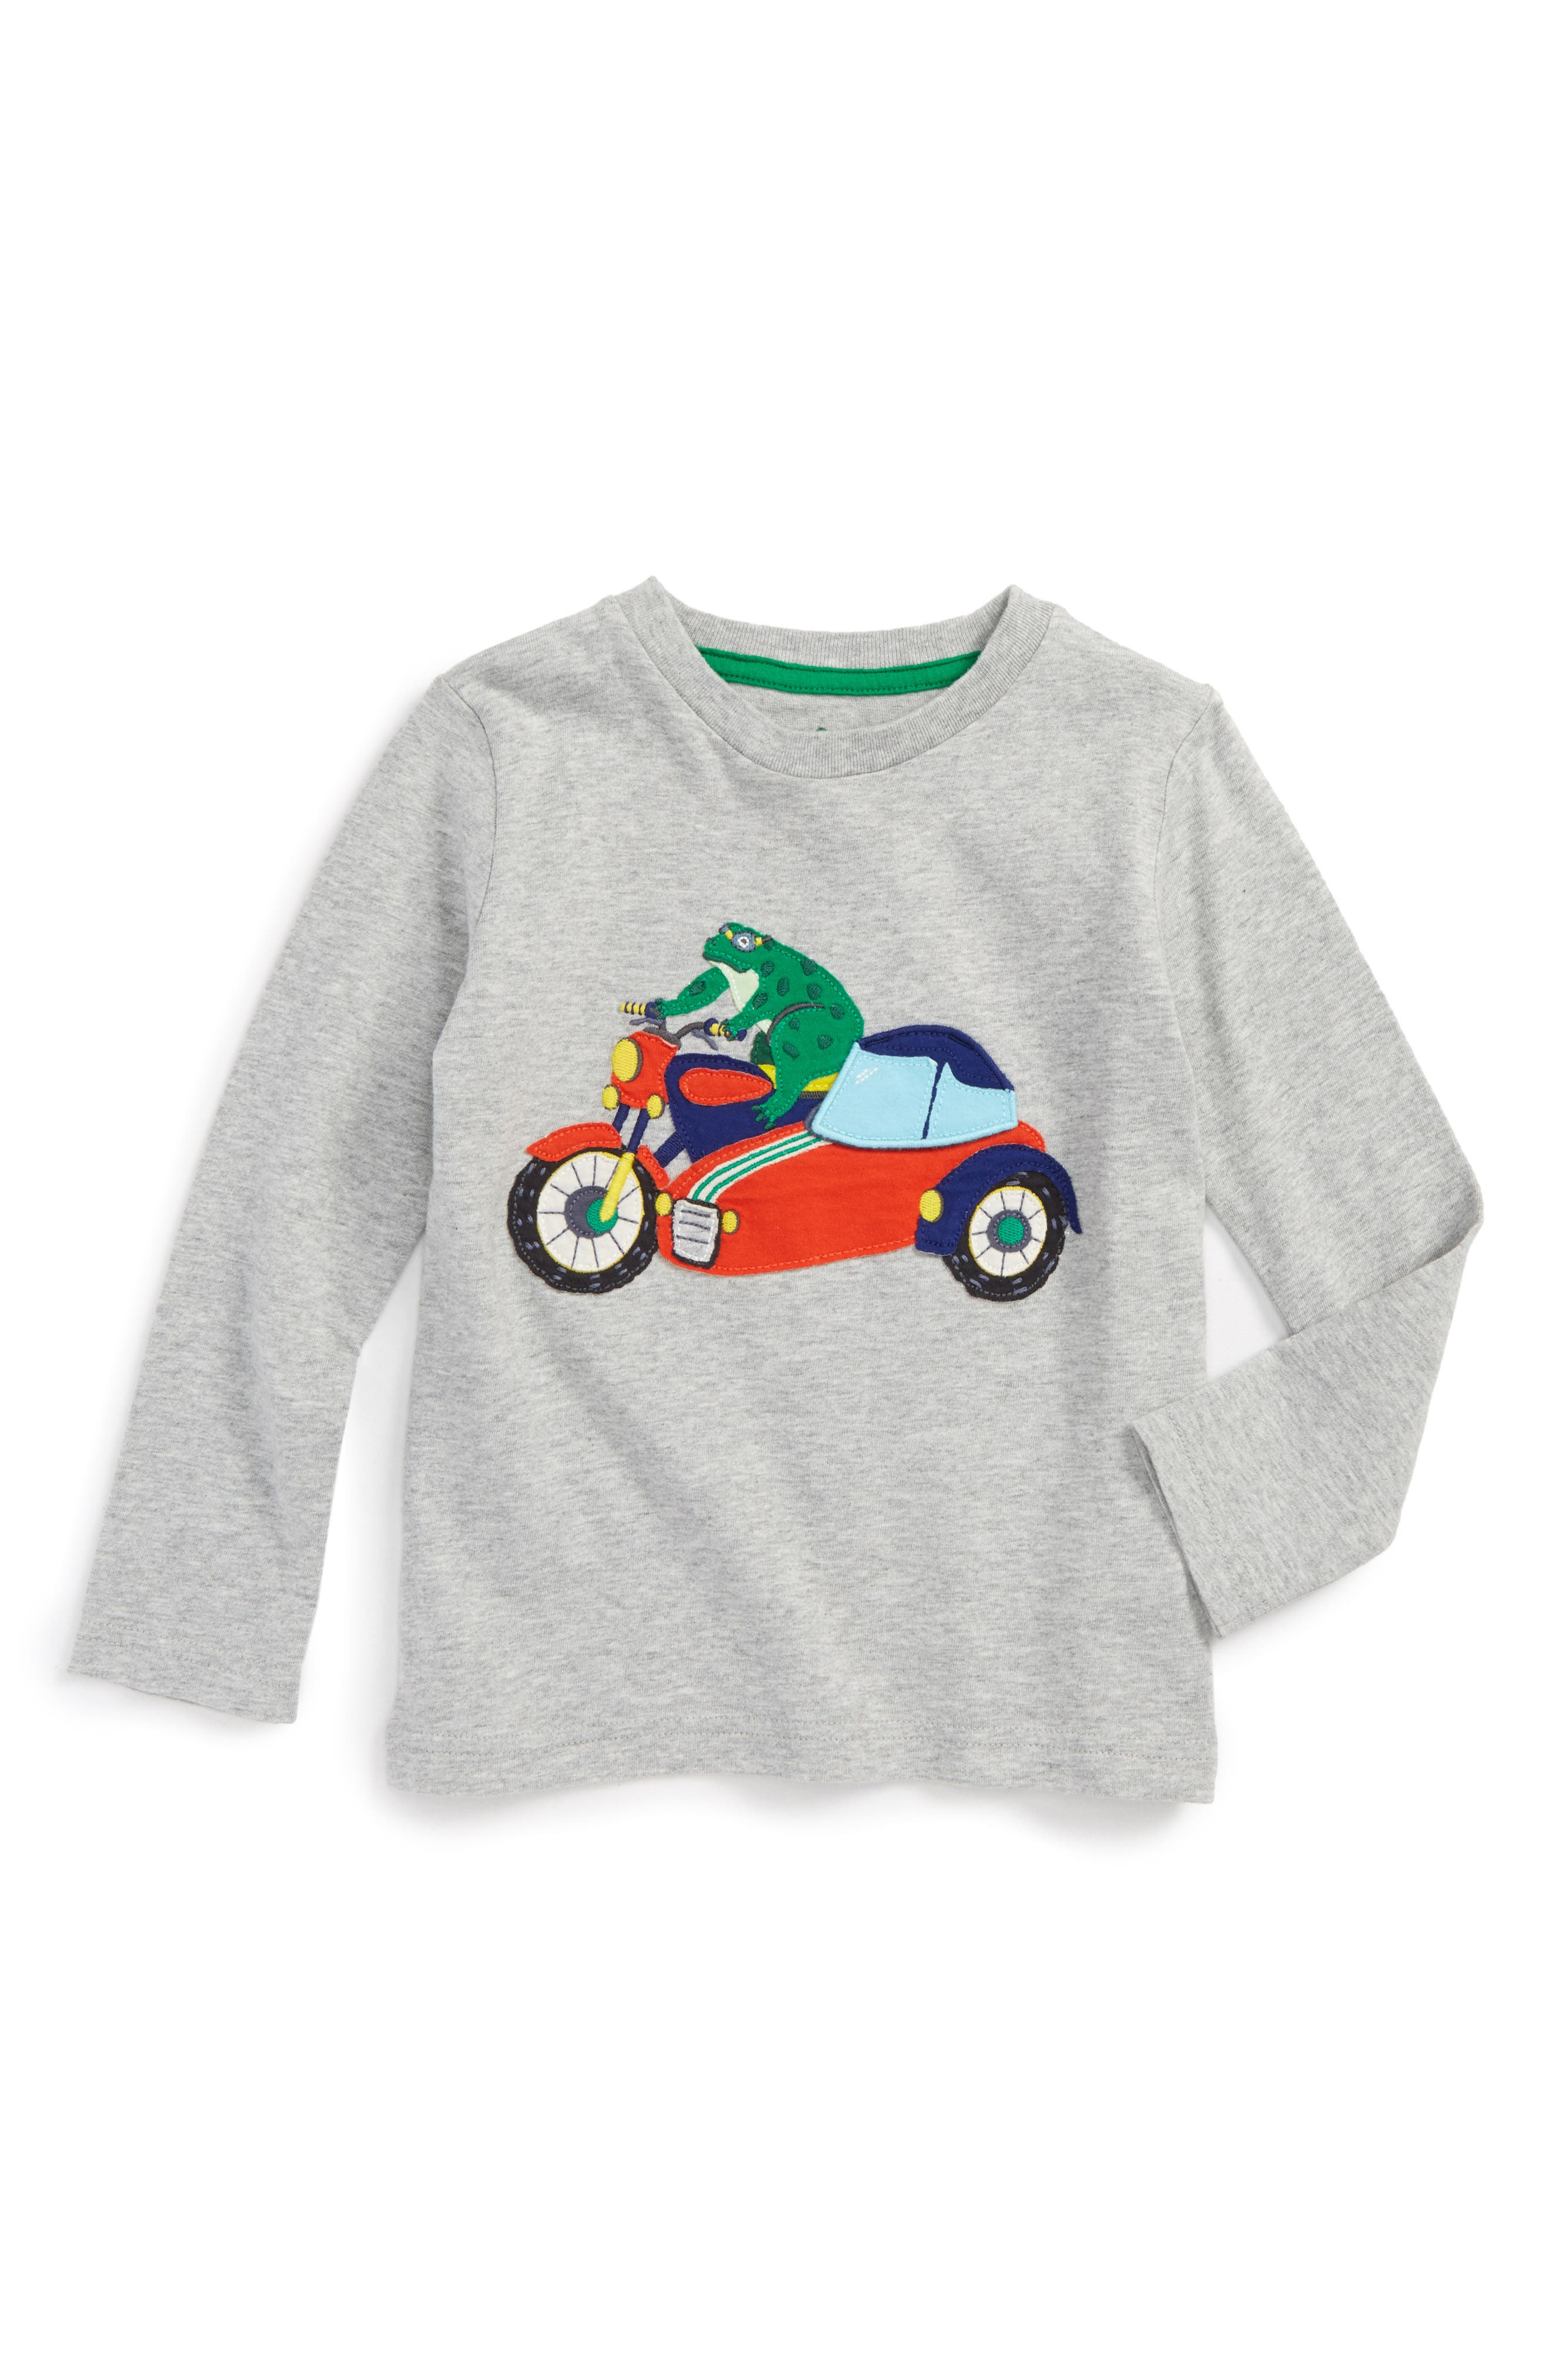 Main Image - Mini Boden Novelty Vehicle T-Shirt (Toddler Boys, Little Boys & Big Boys)